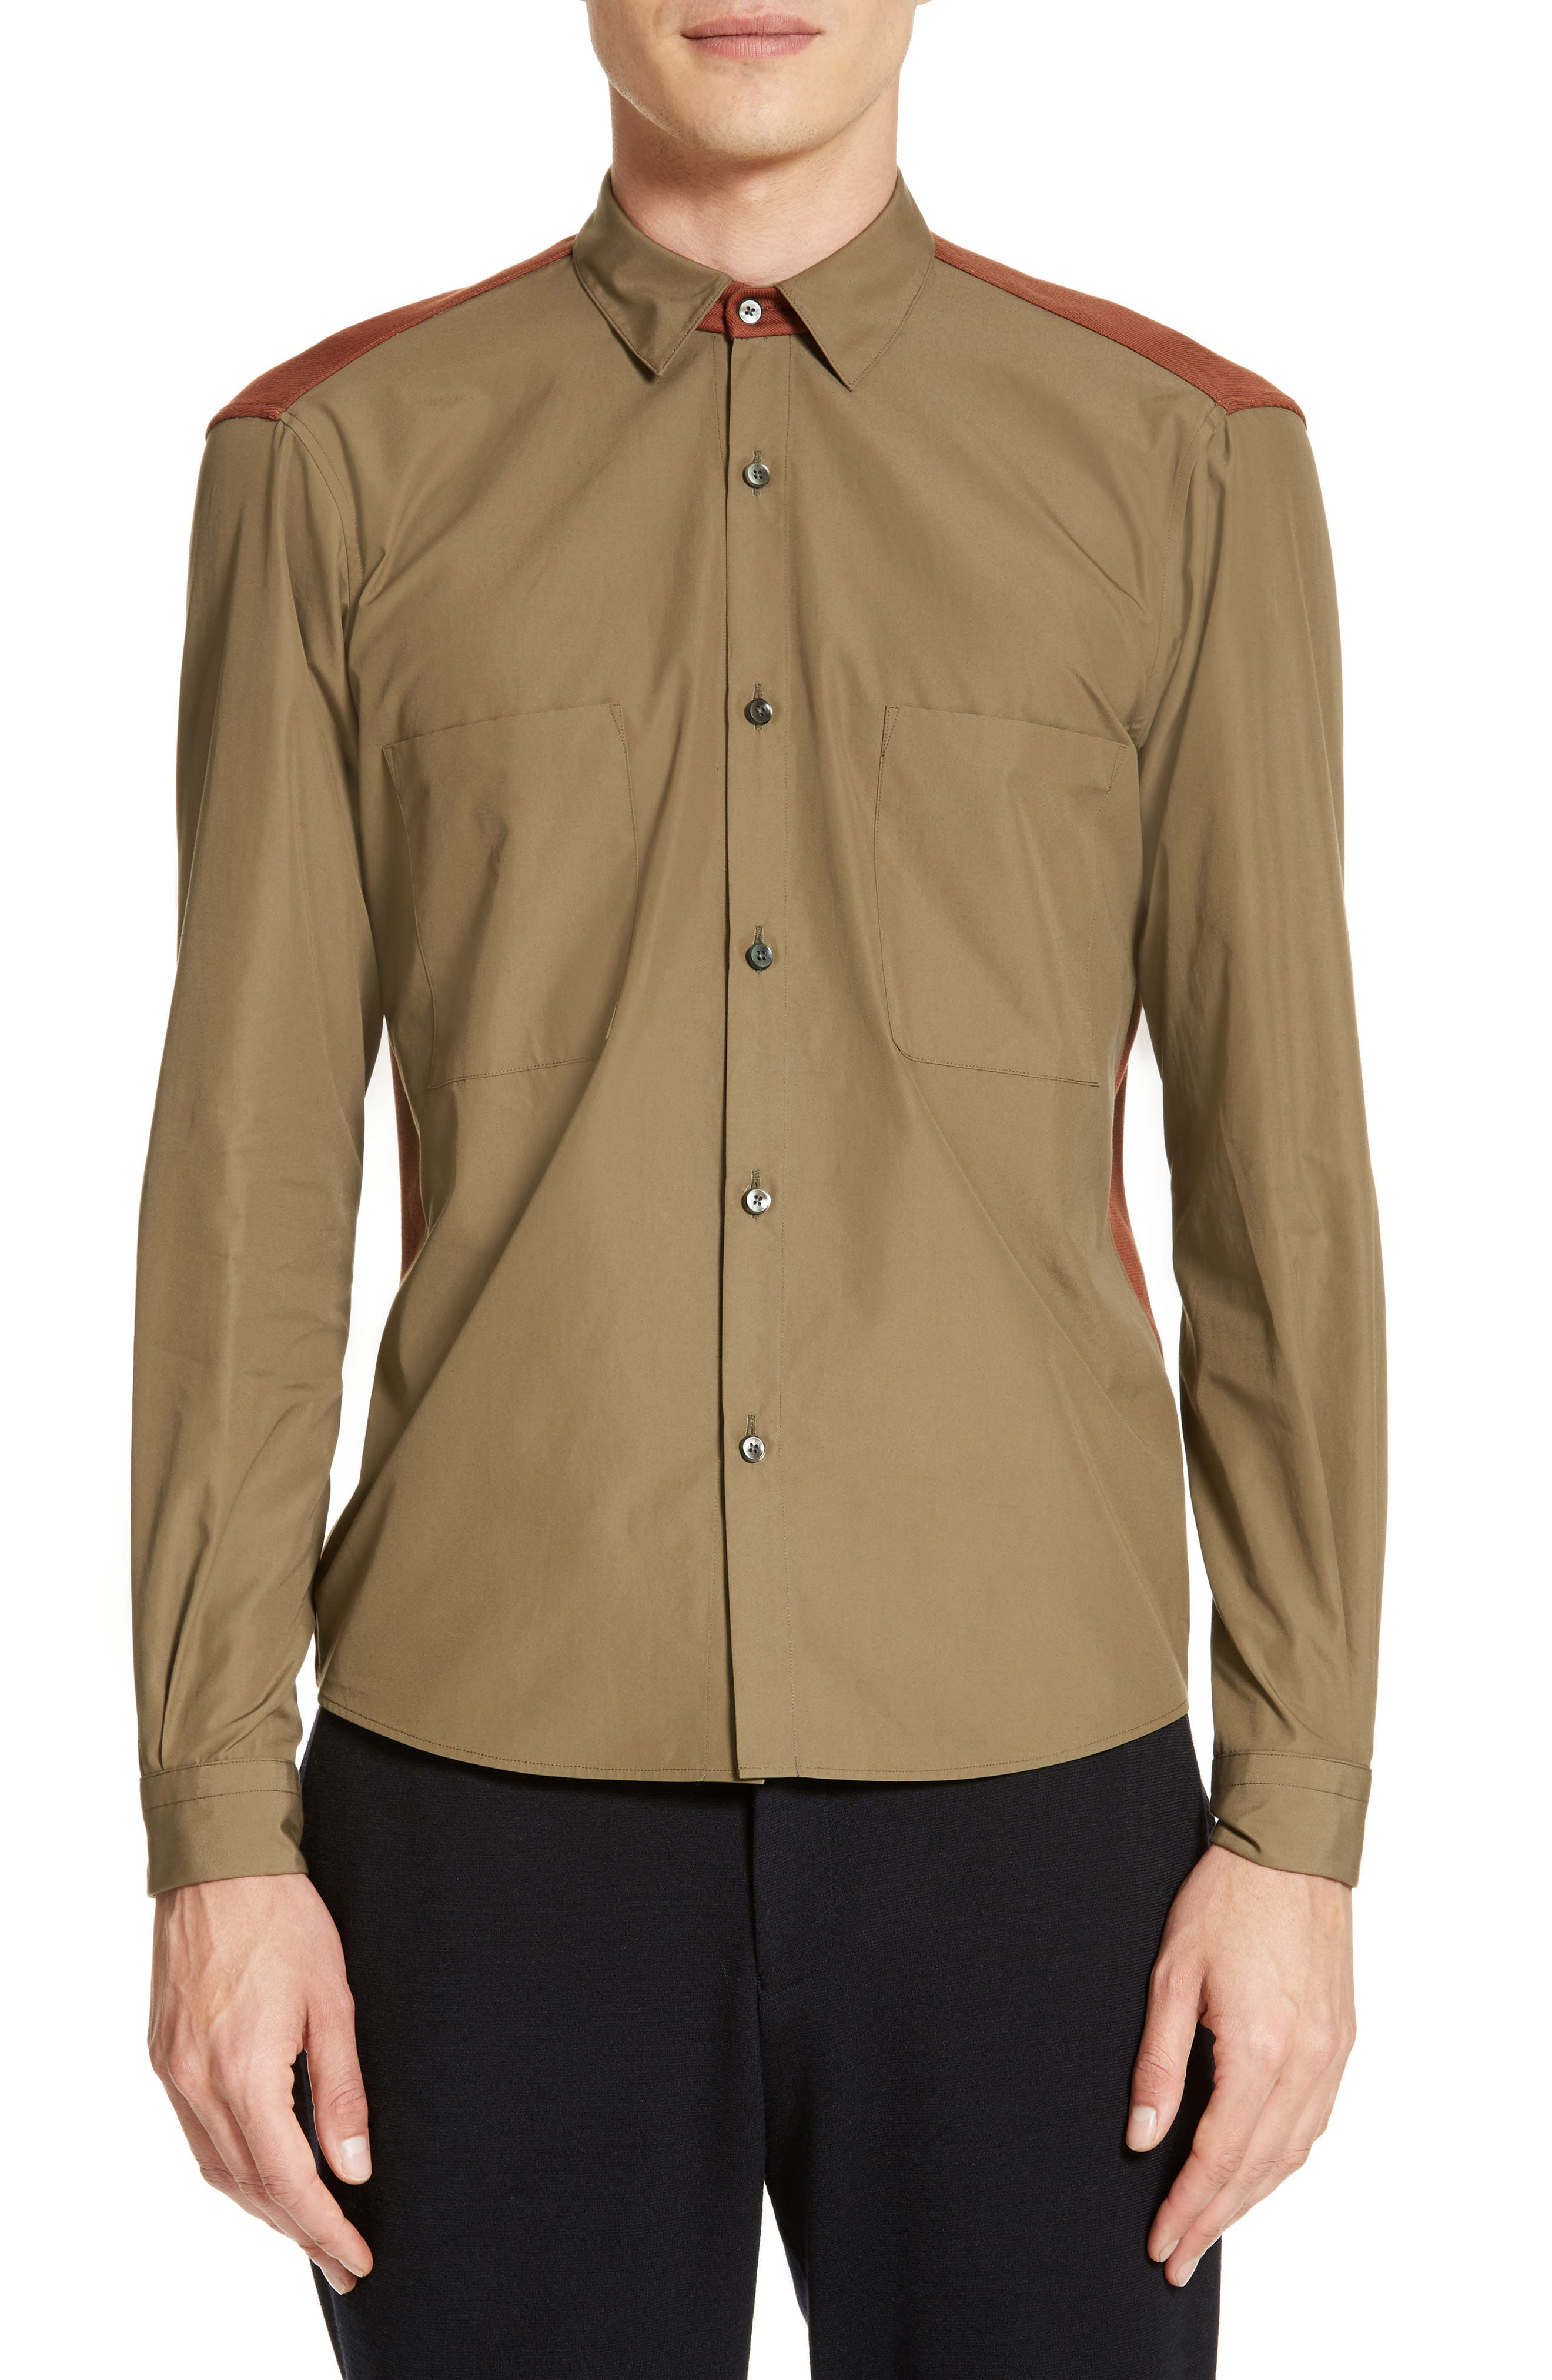 Tricot Colorblock Sport Shirt,                         Main,                         color, Army Green